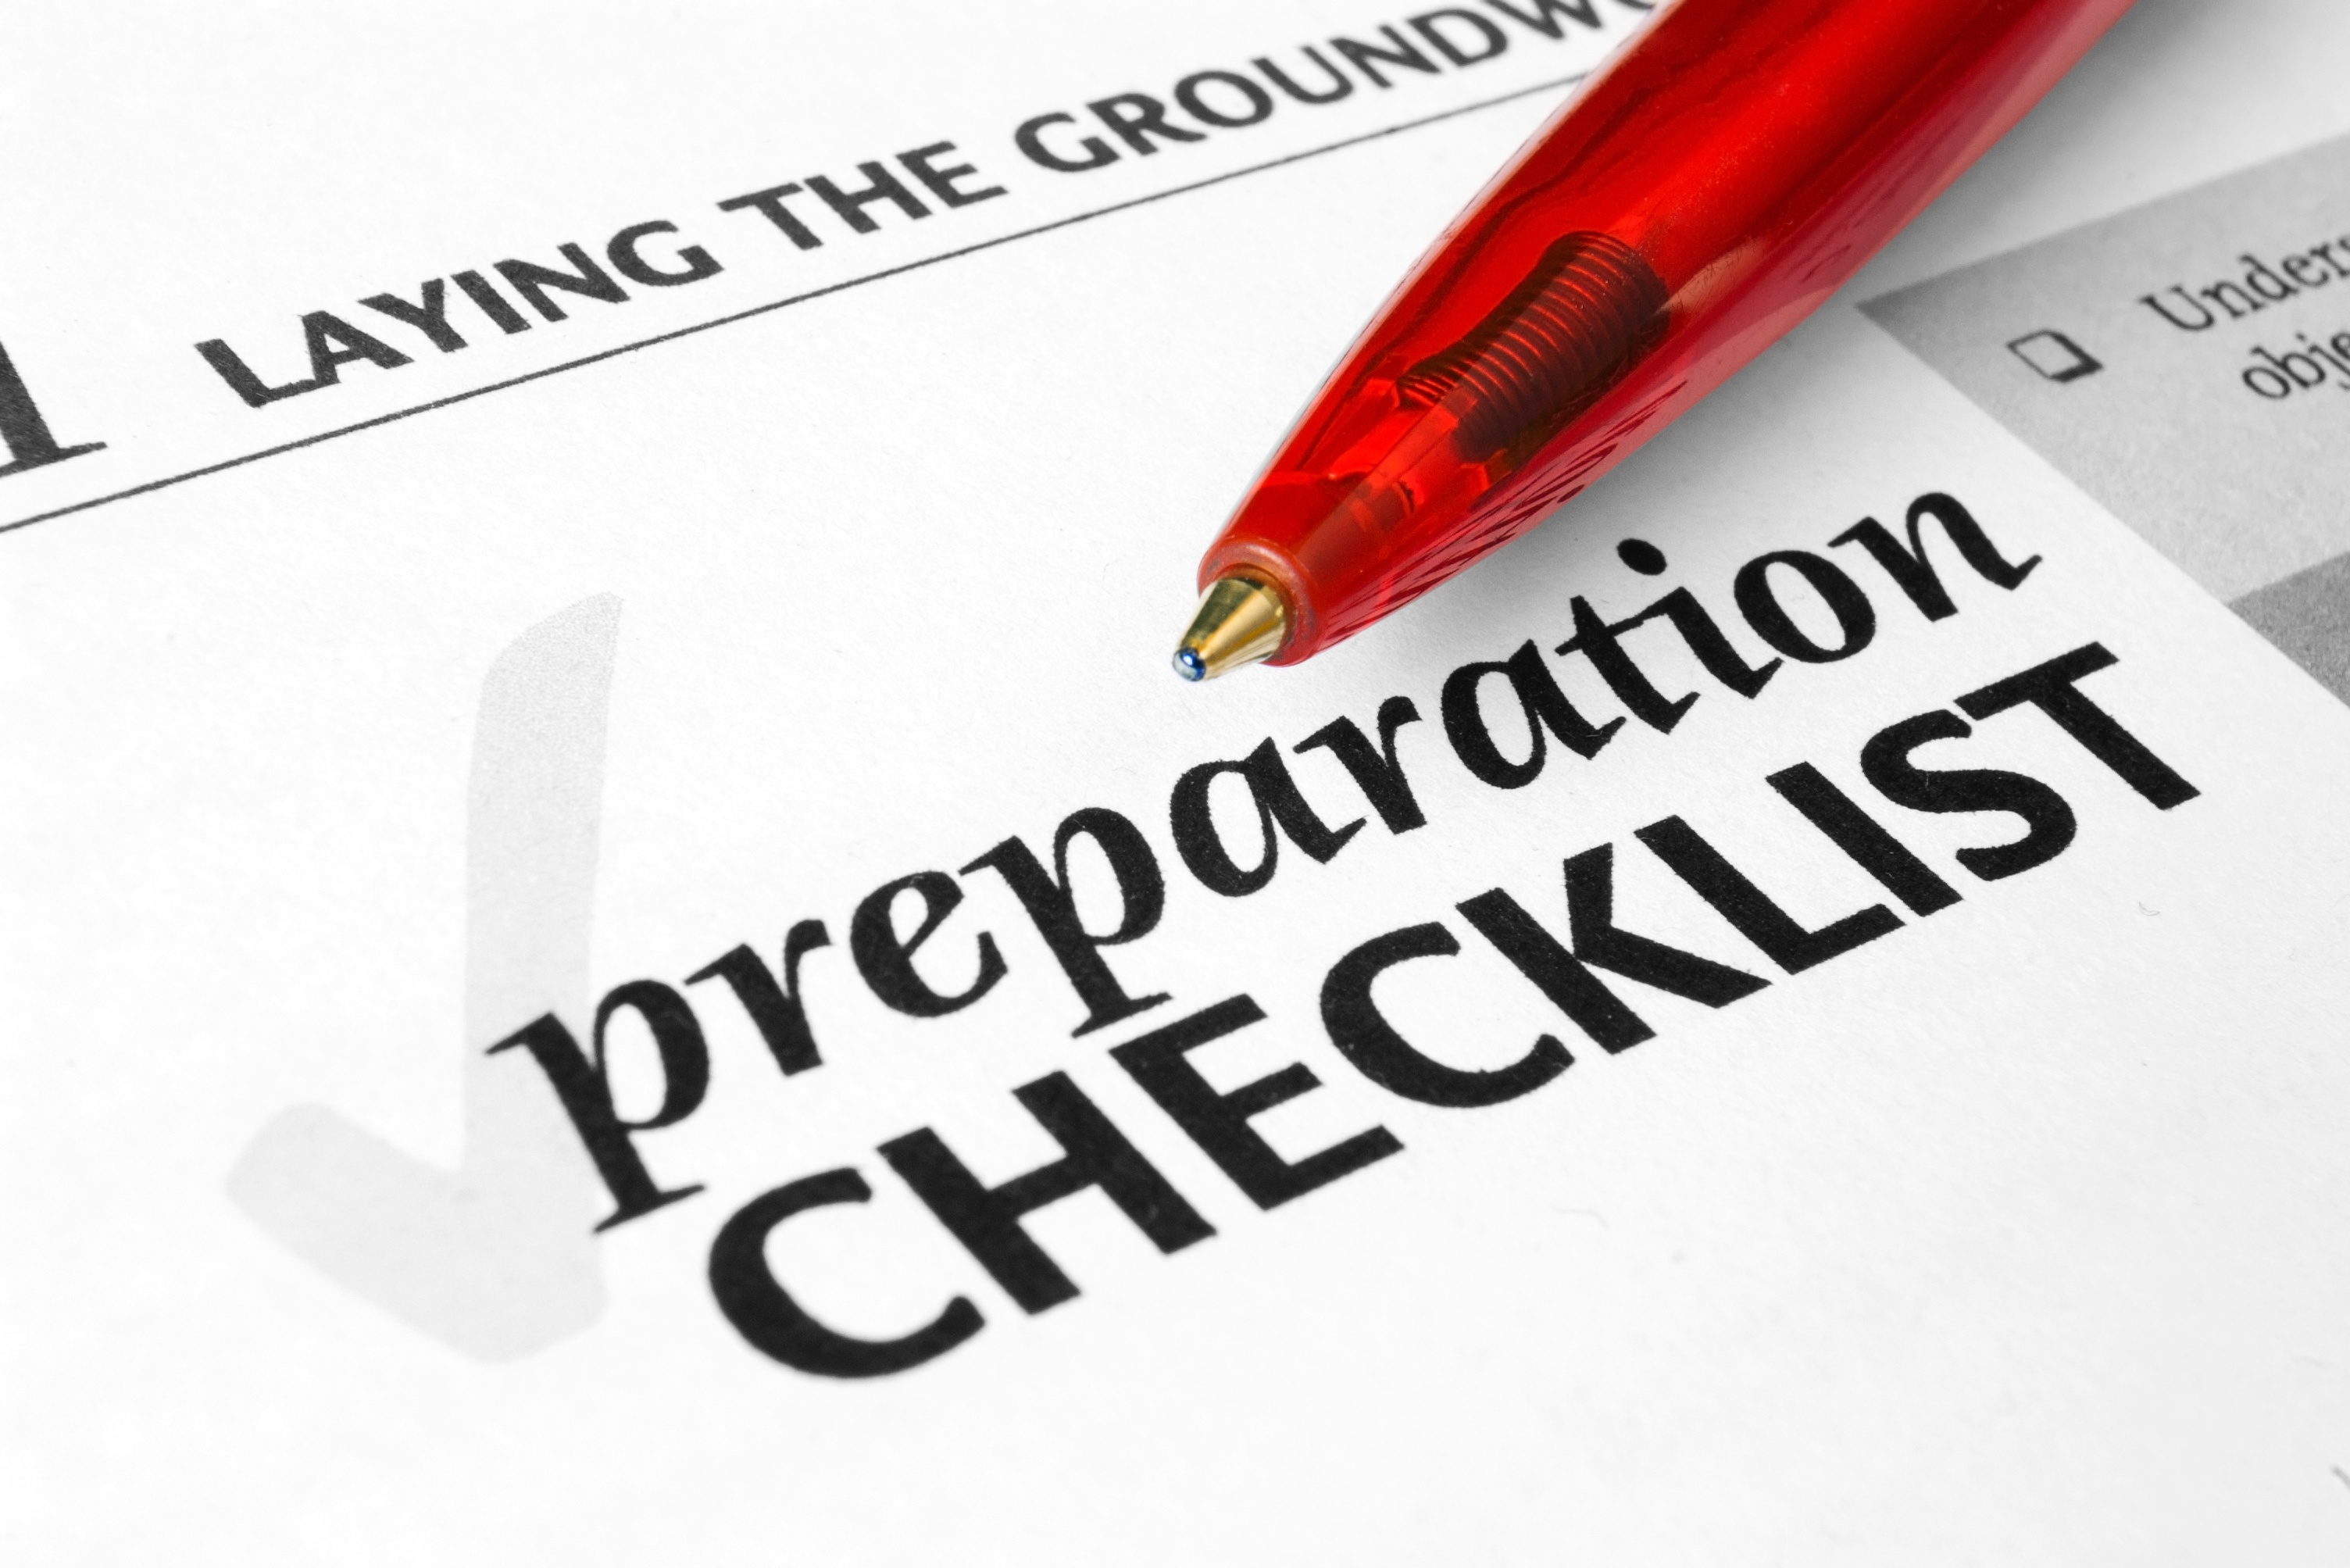 The 10 Items That Must Be On Your Crisis Planning 'To Do' List in 2017